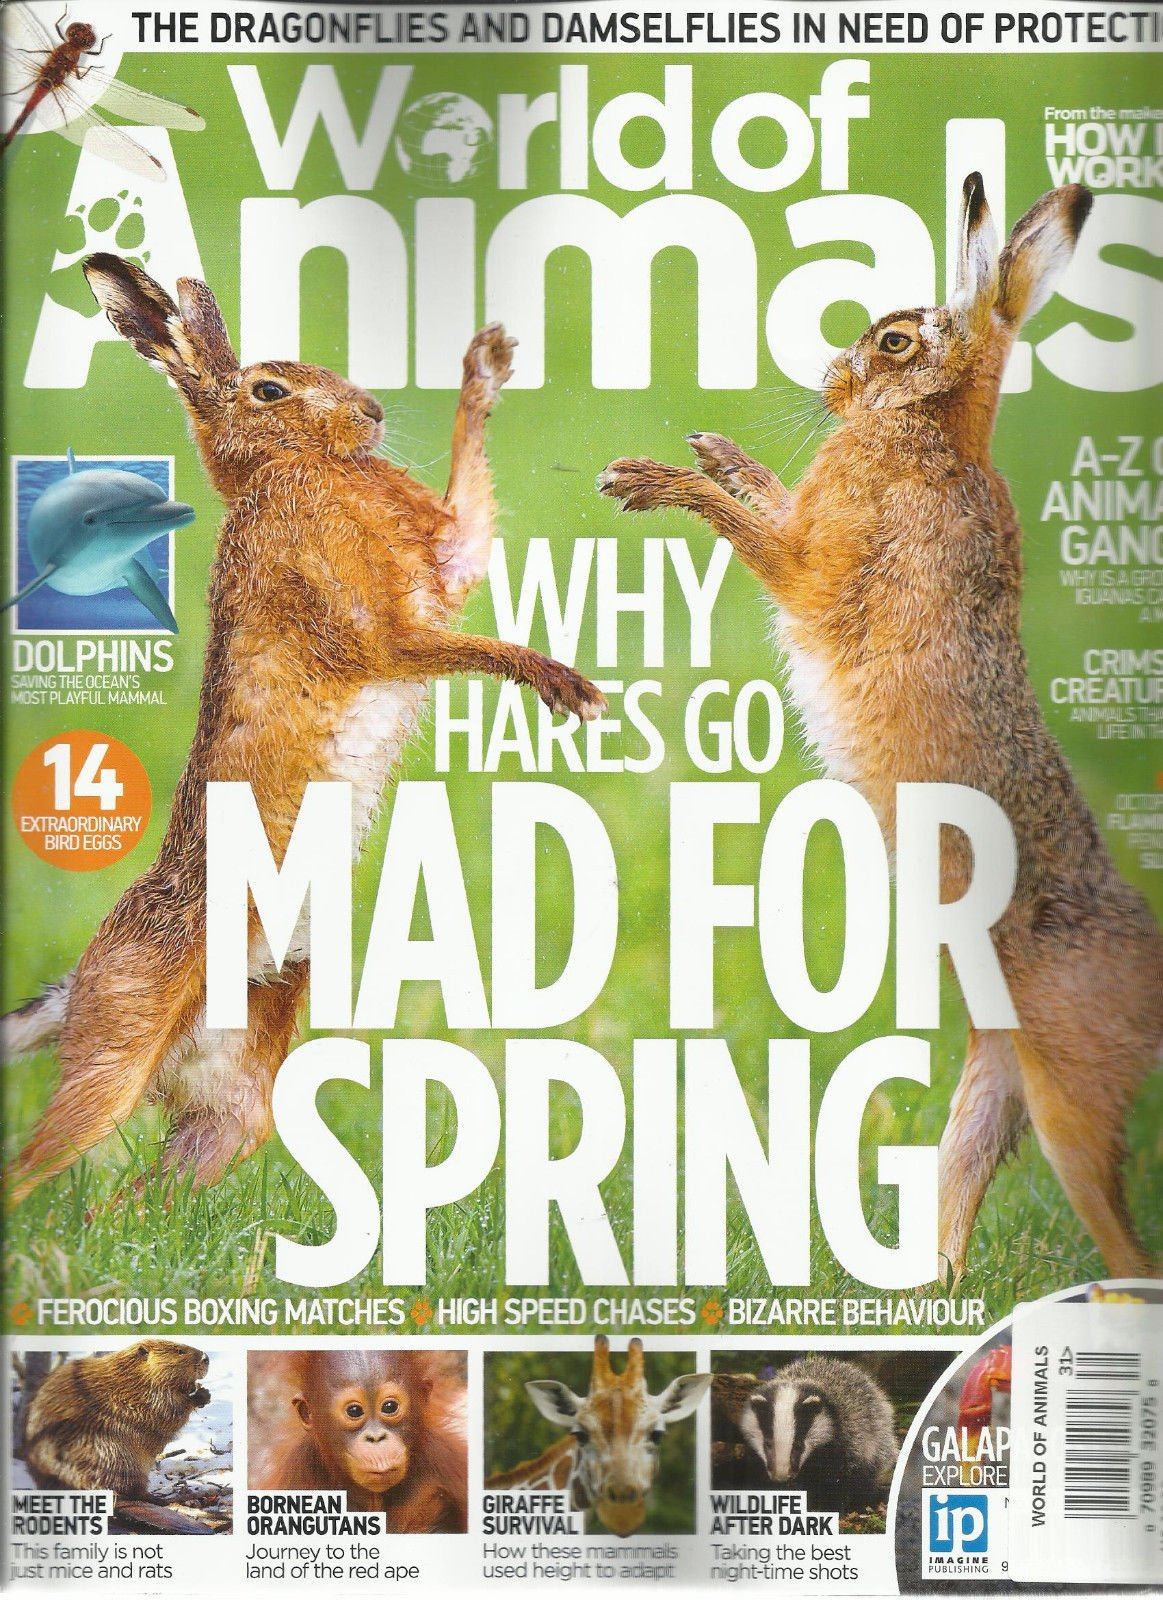 HOW IT WORKS/WORLD OF ANIMALS WHY HARES GO MAD FOR SPRING, 2016 ISSUE, 31